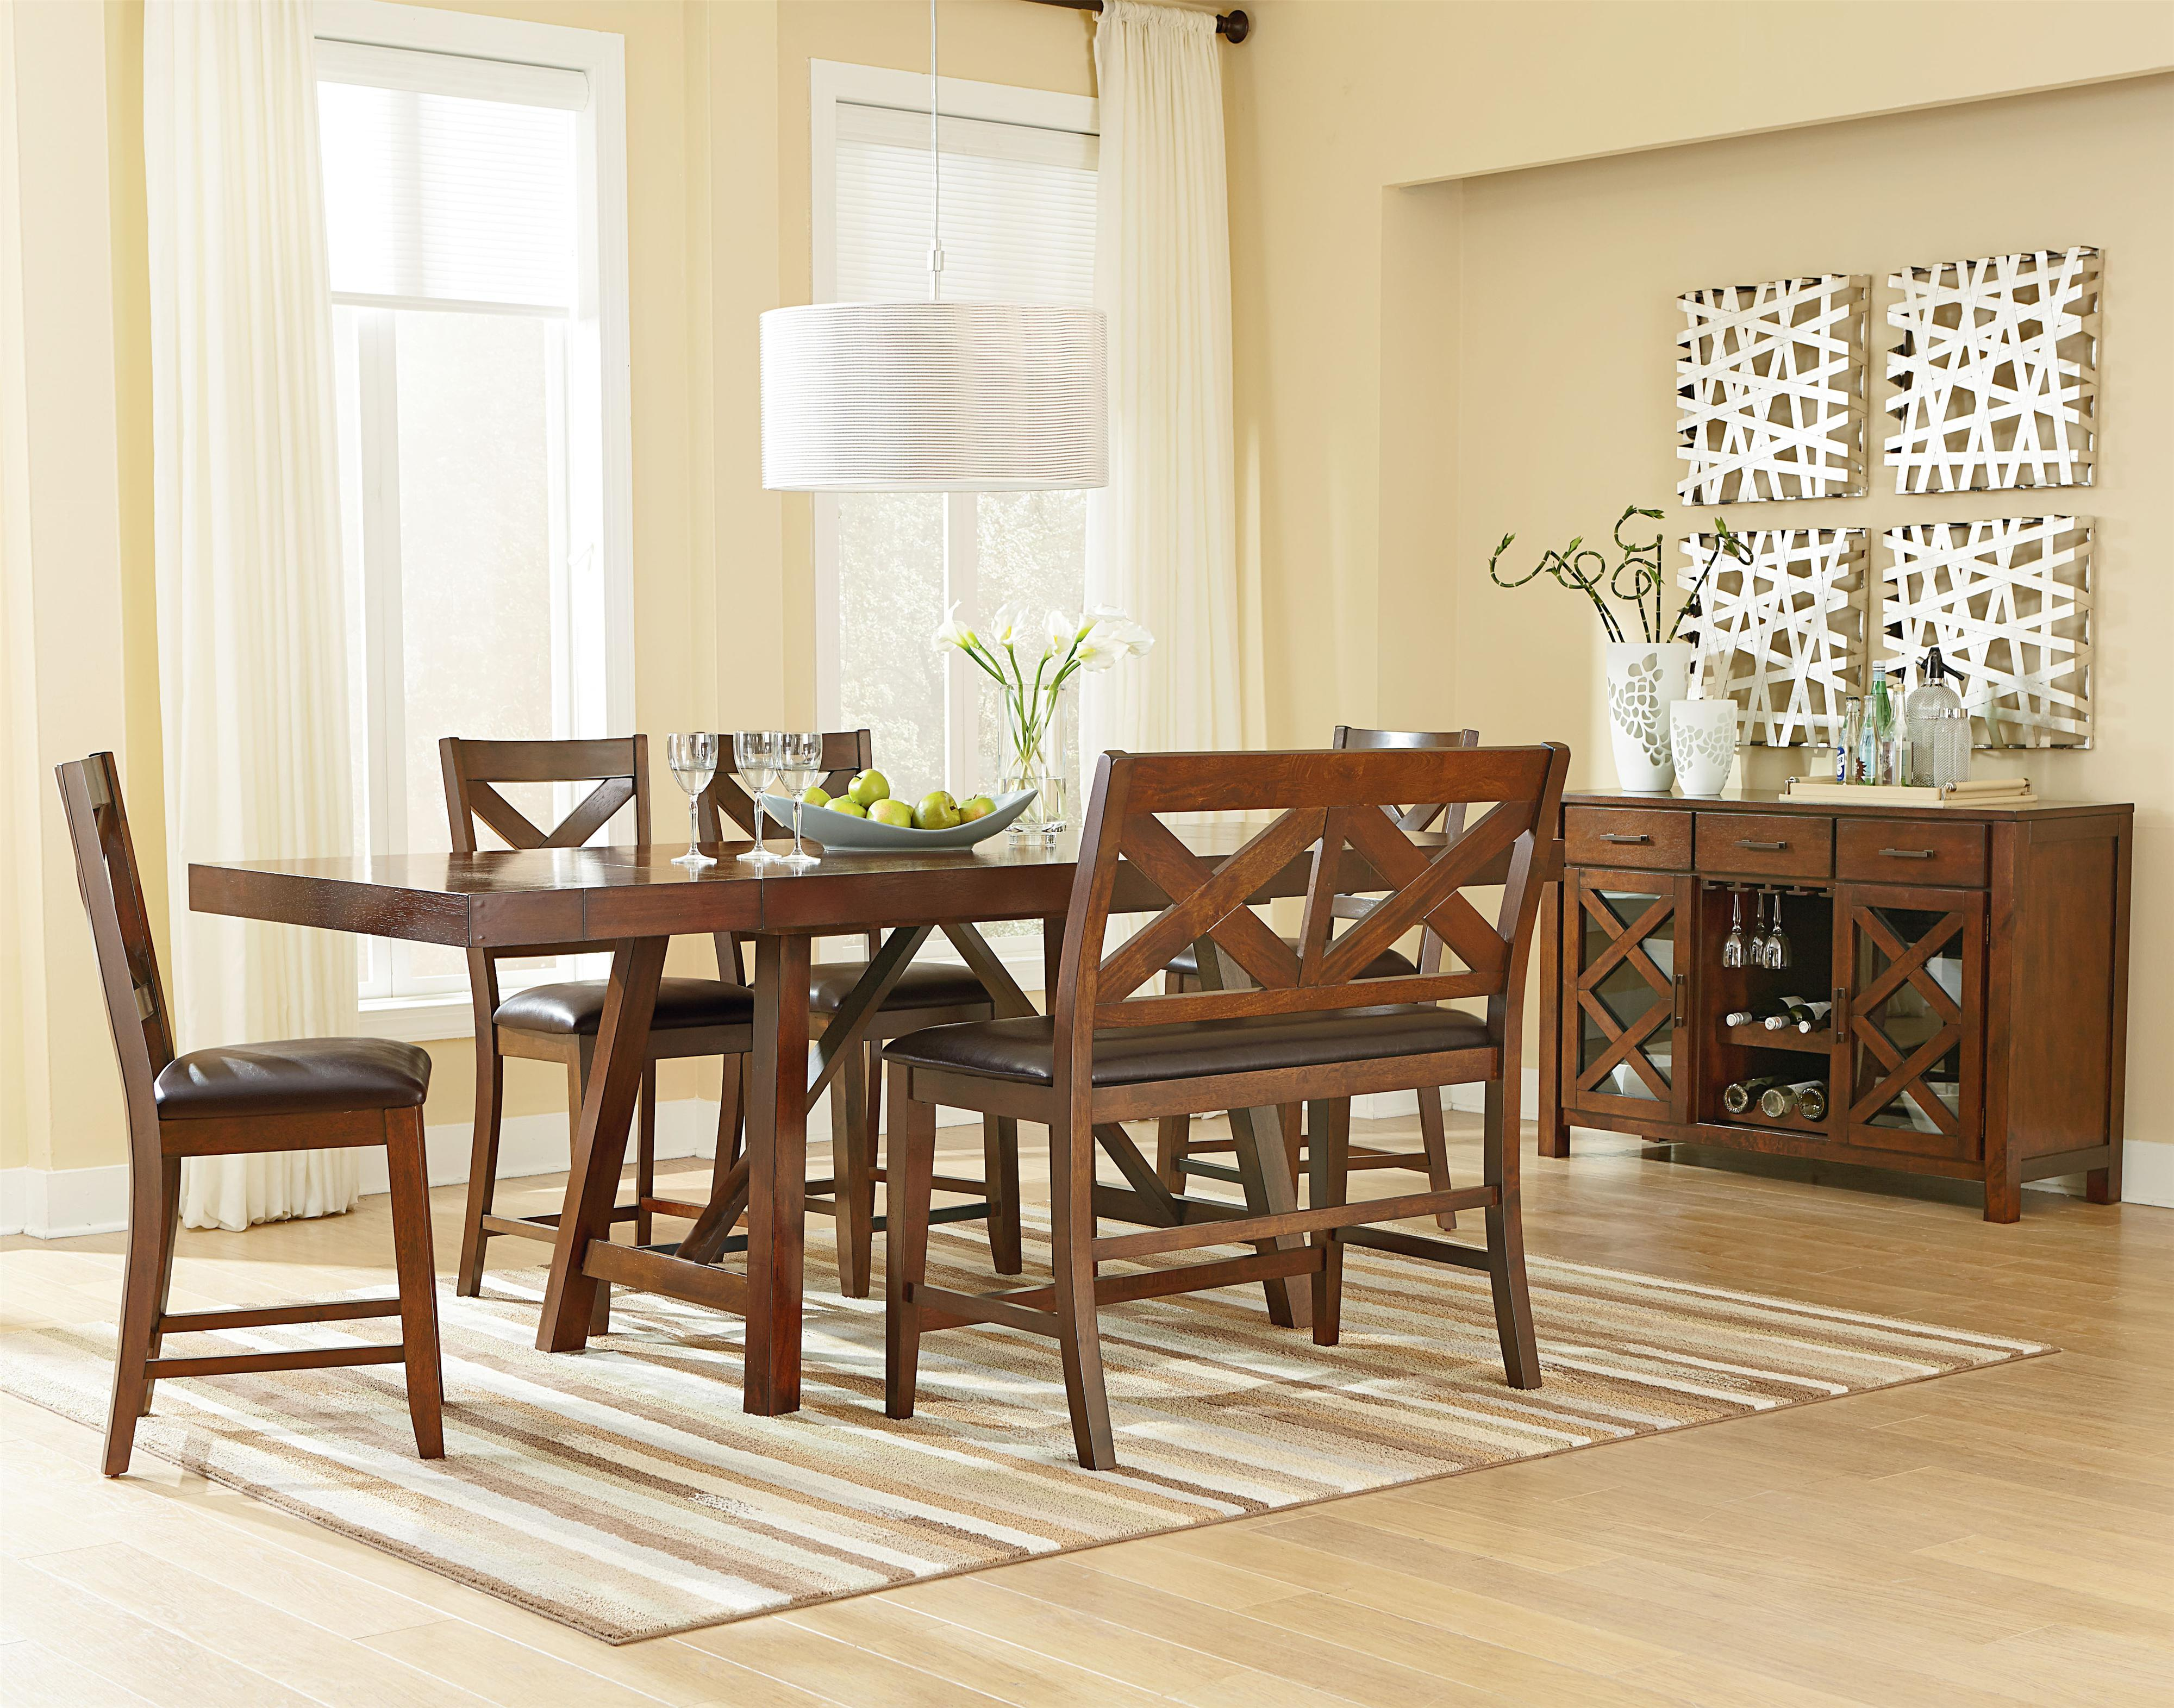 Omaha brown casual dining room group by standard furniture for Casual dining room